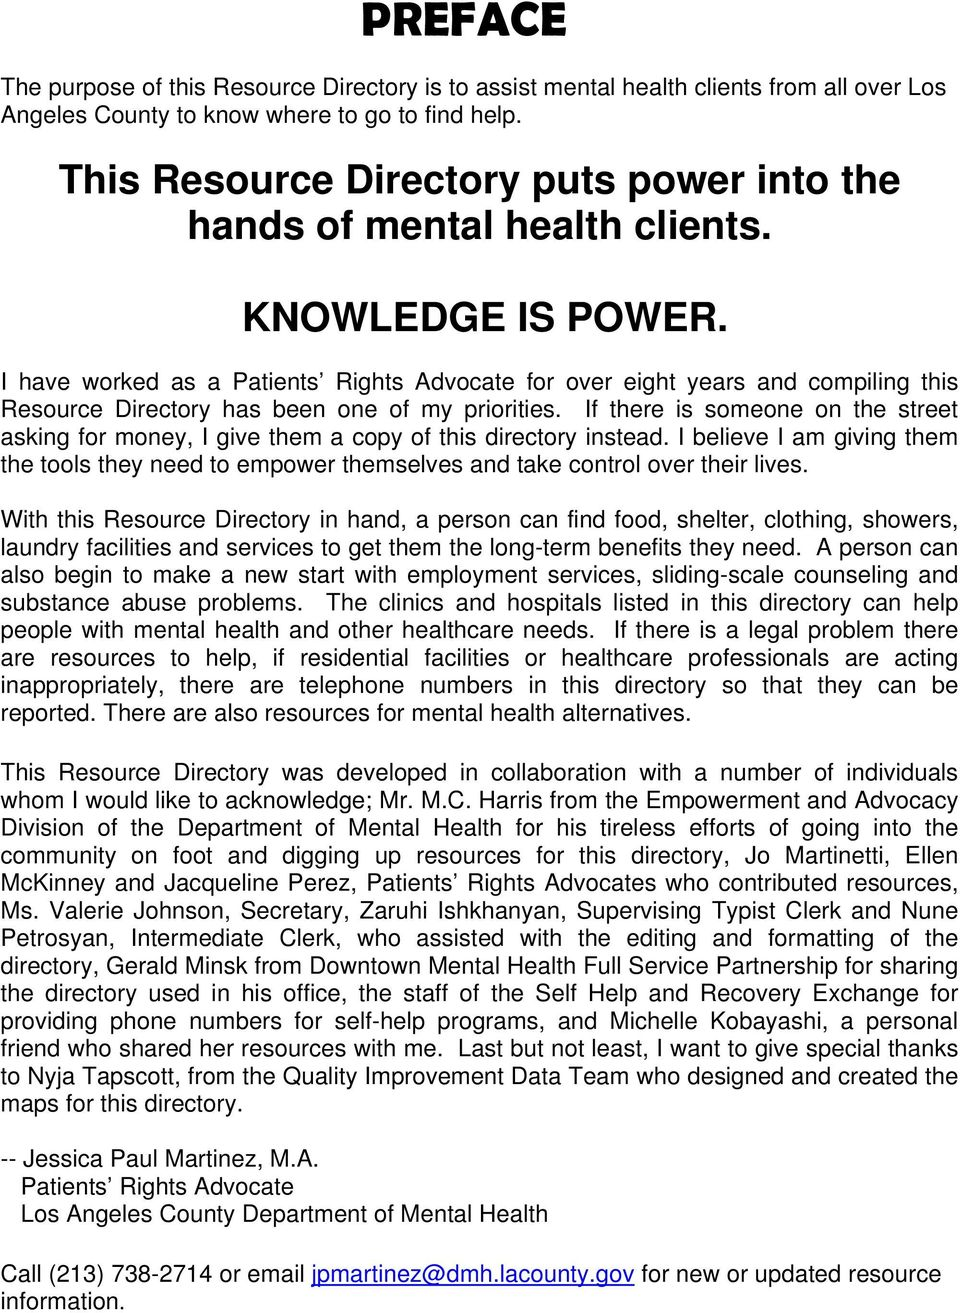 Mental Health Client Resource Directory Patients Rights Office